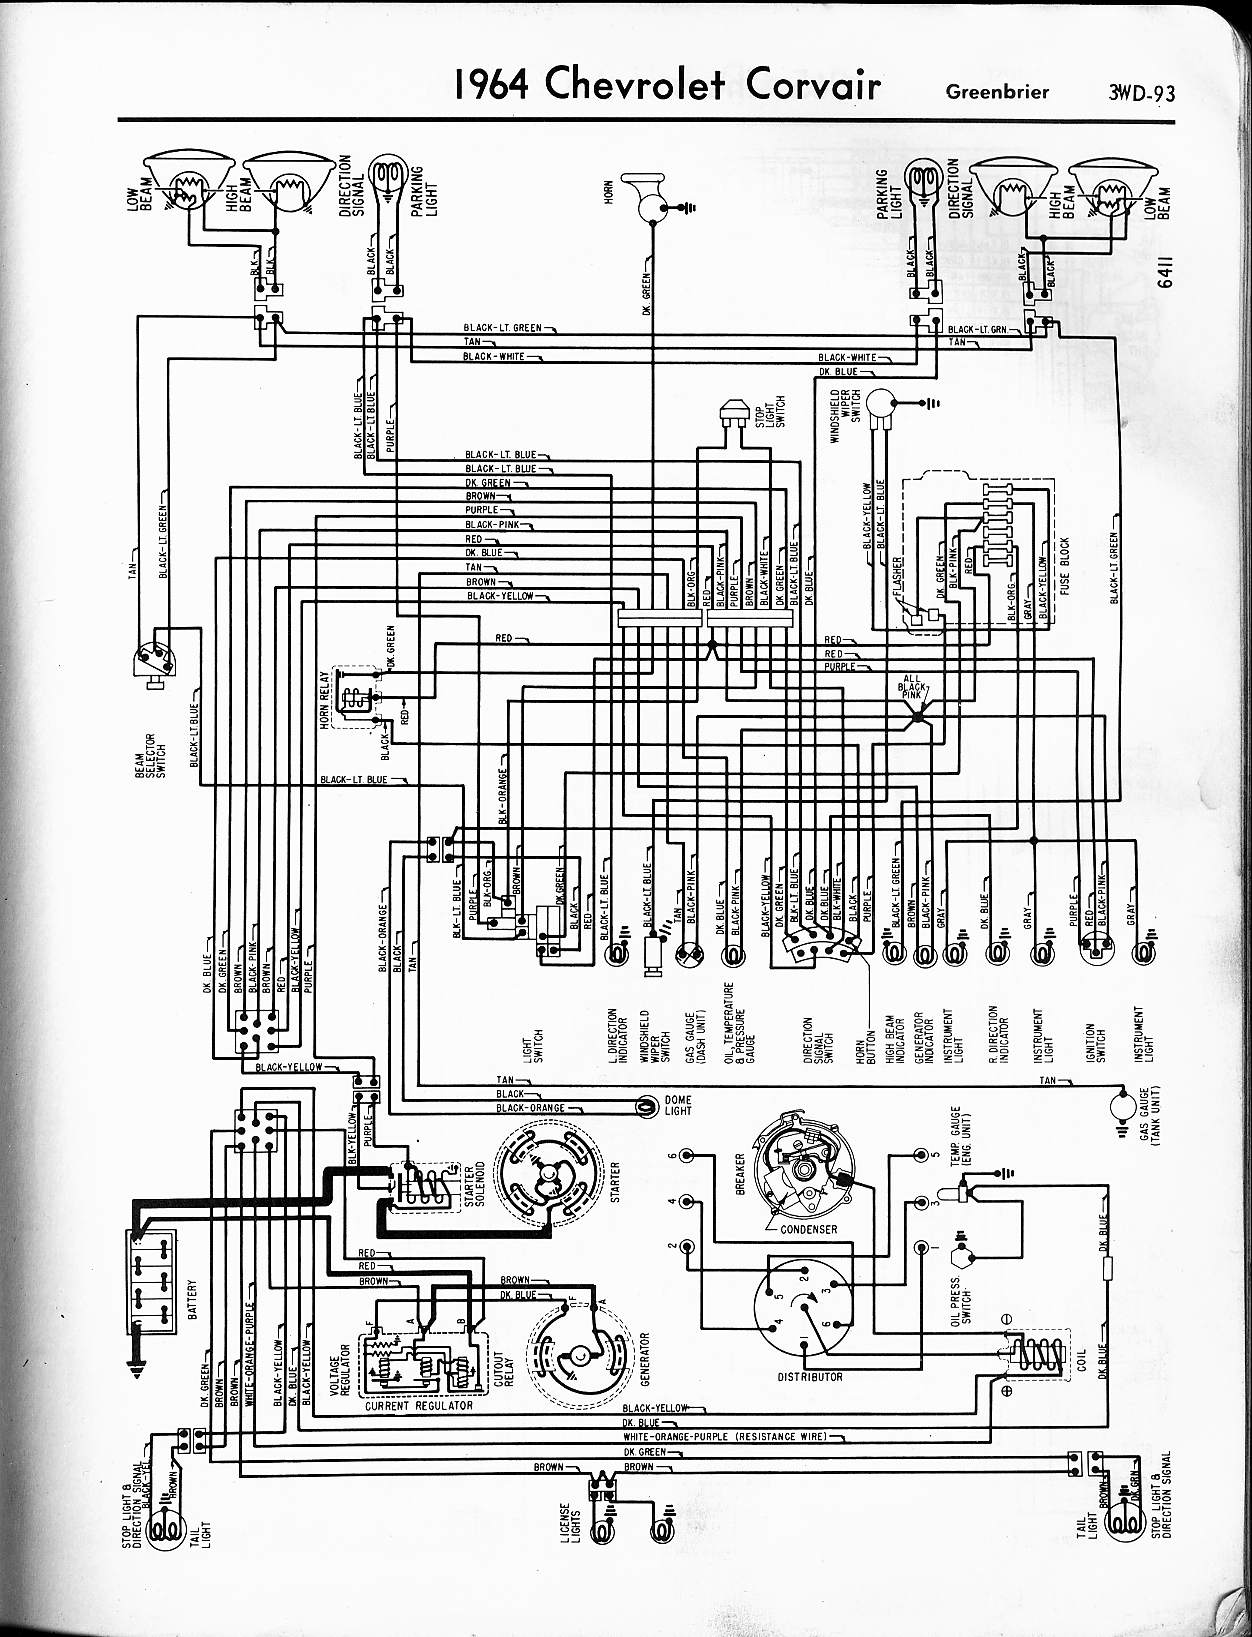 chevrolet 4l80e wiring diagram photocell switch 75 chevy truck get free image about